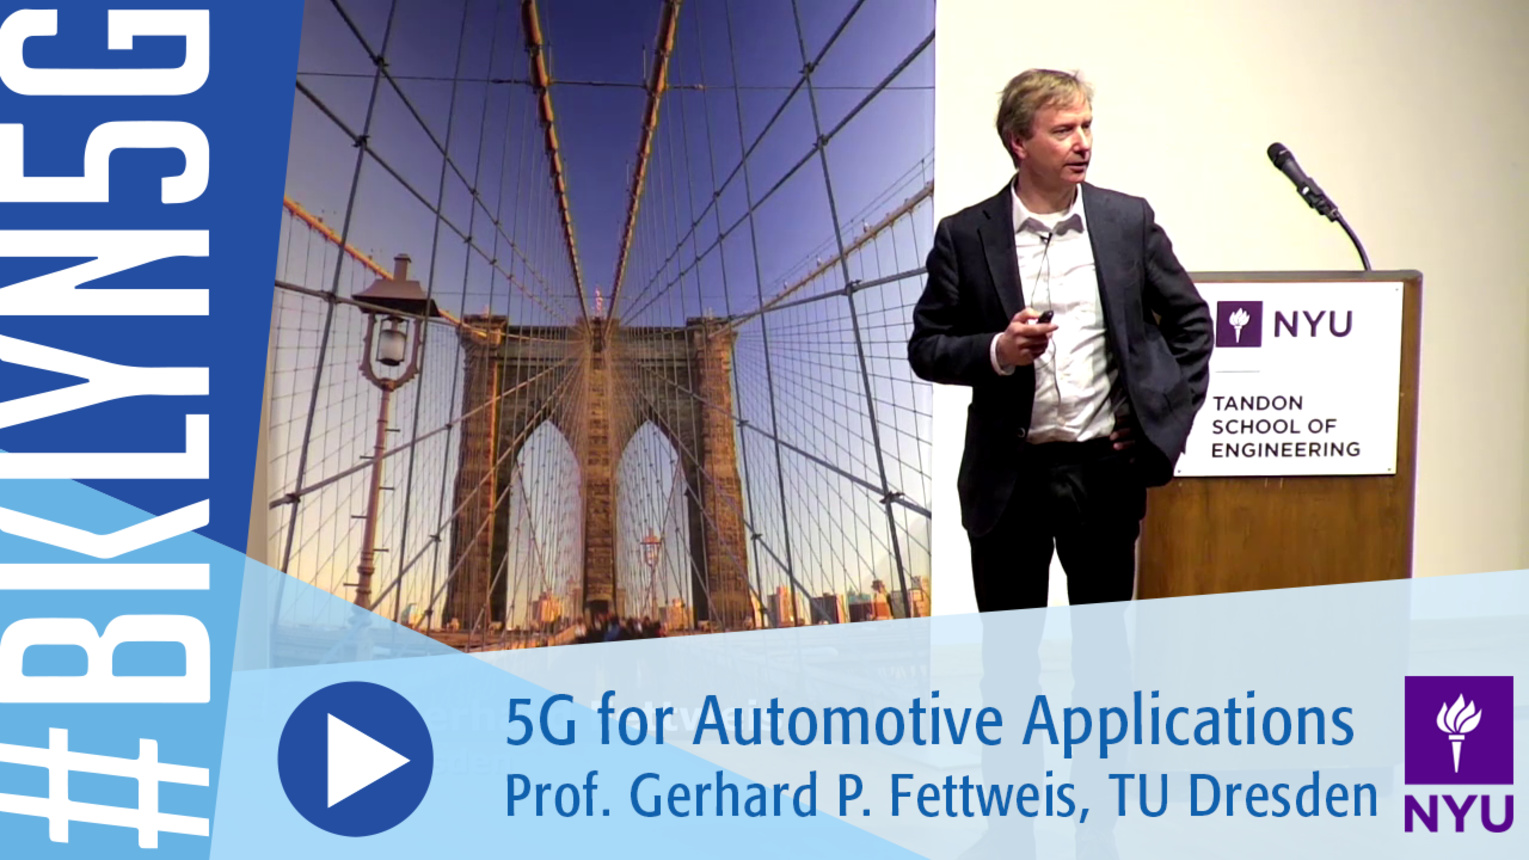 Brooklyn 5G 2016: Professor Gerhard Fettweis on 5G for Automotive Applications